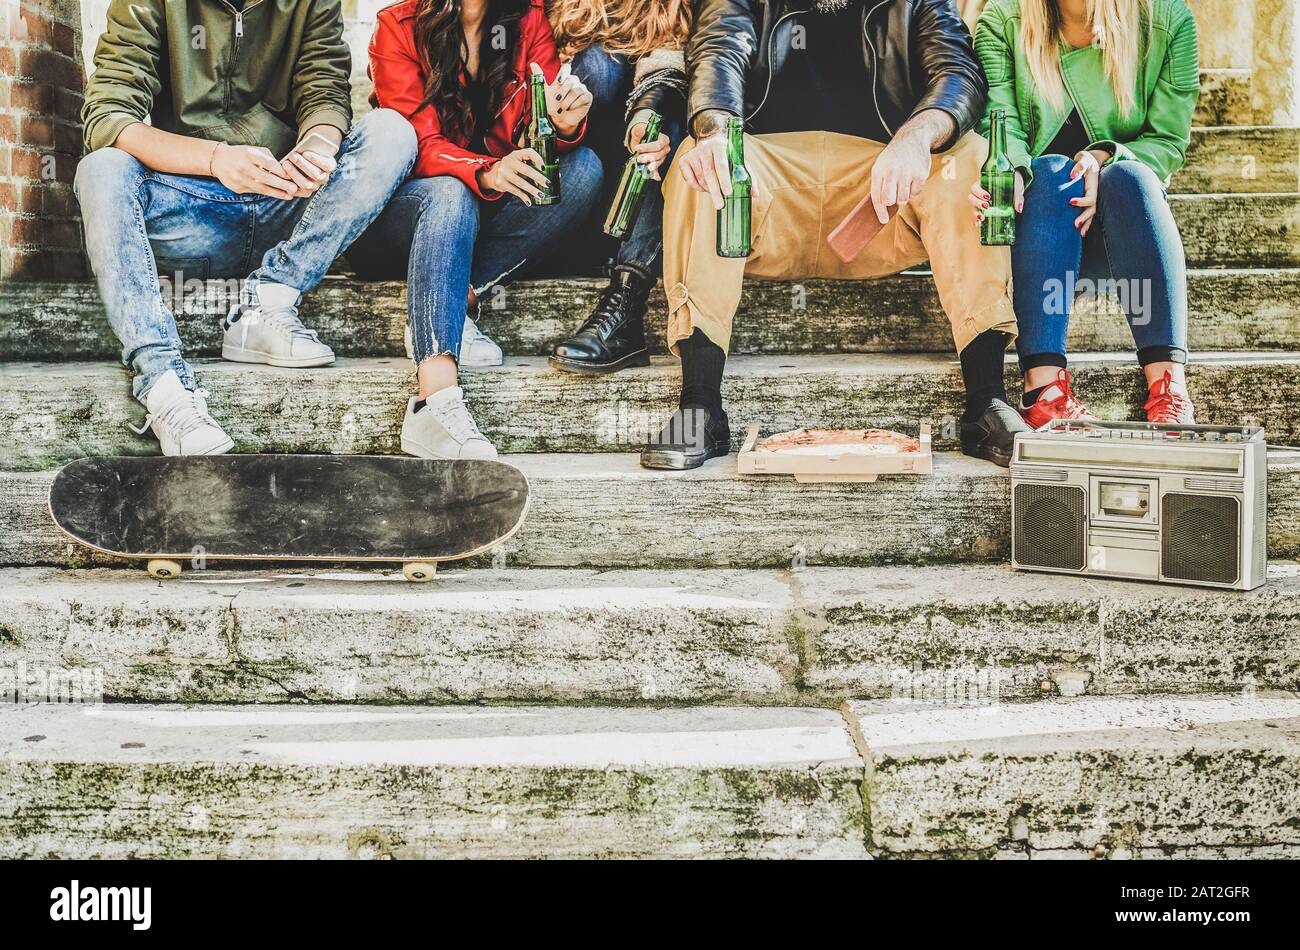 Group of friends drinking beer and eating takeout pizza outdoor -Young people sitting in staircase having fun listening music - Friendship, party, soc Stock Photo